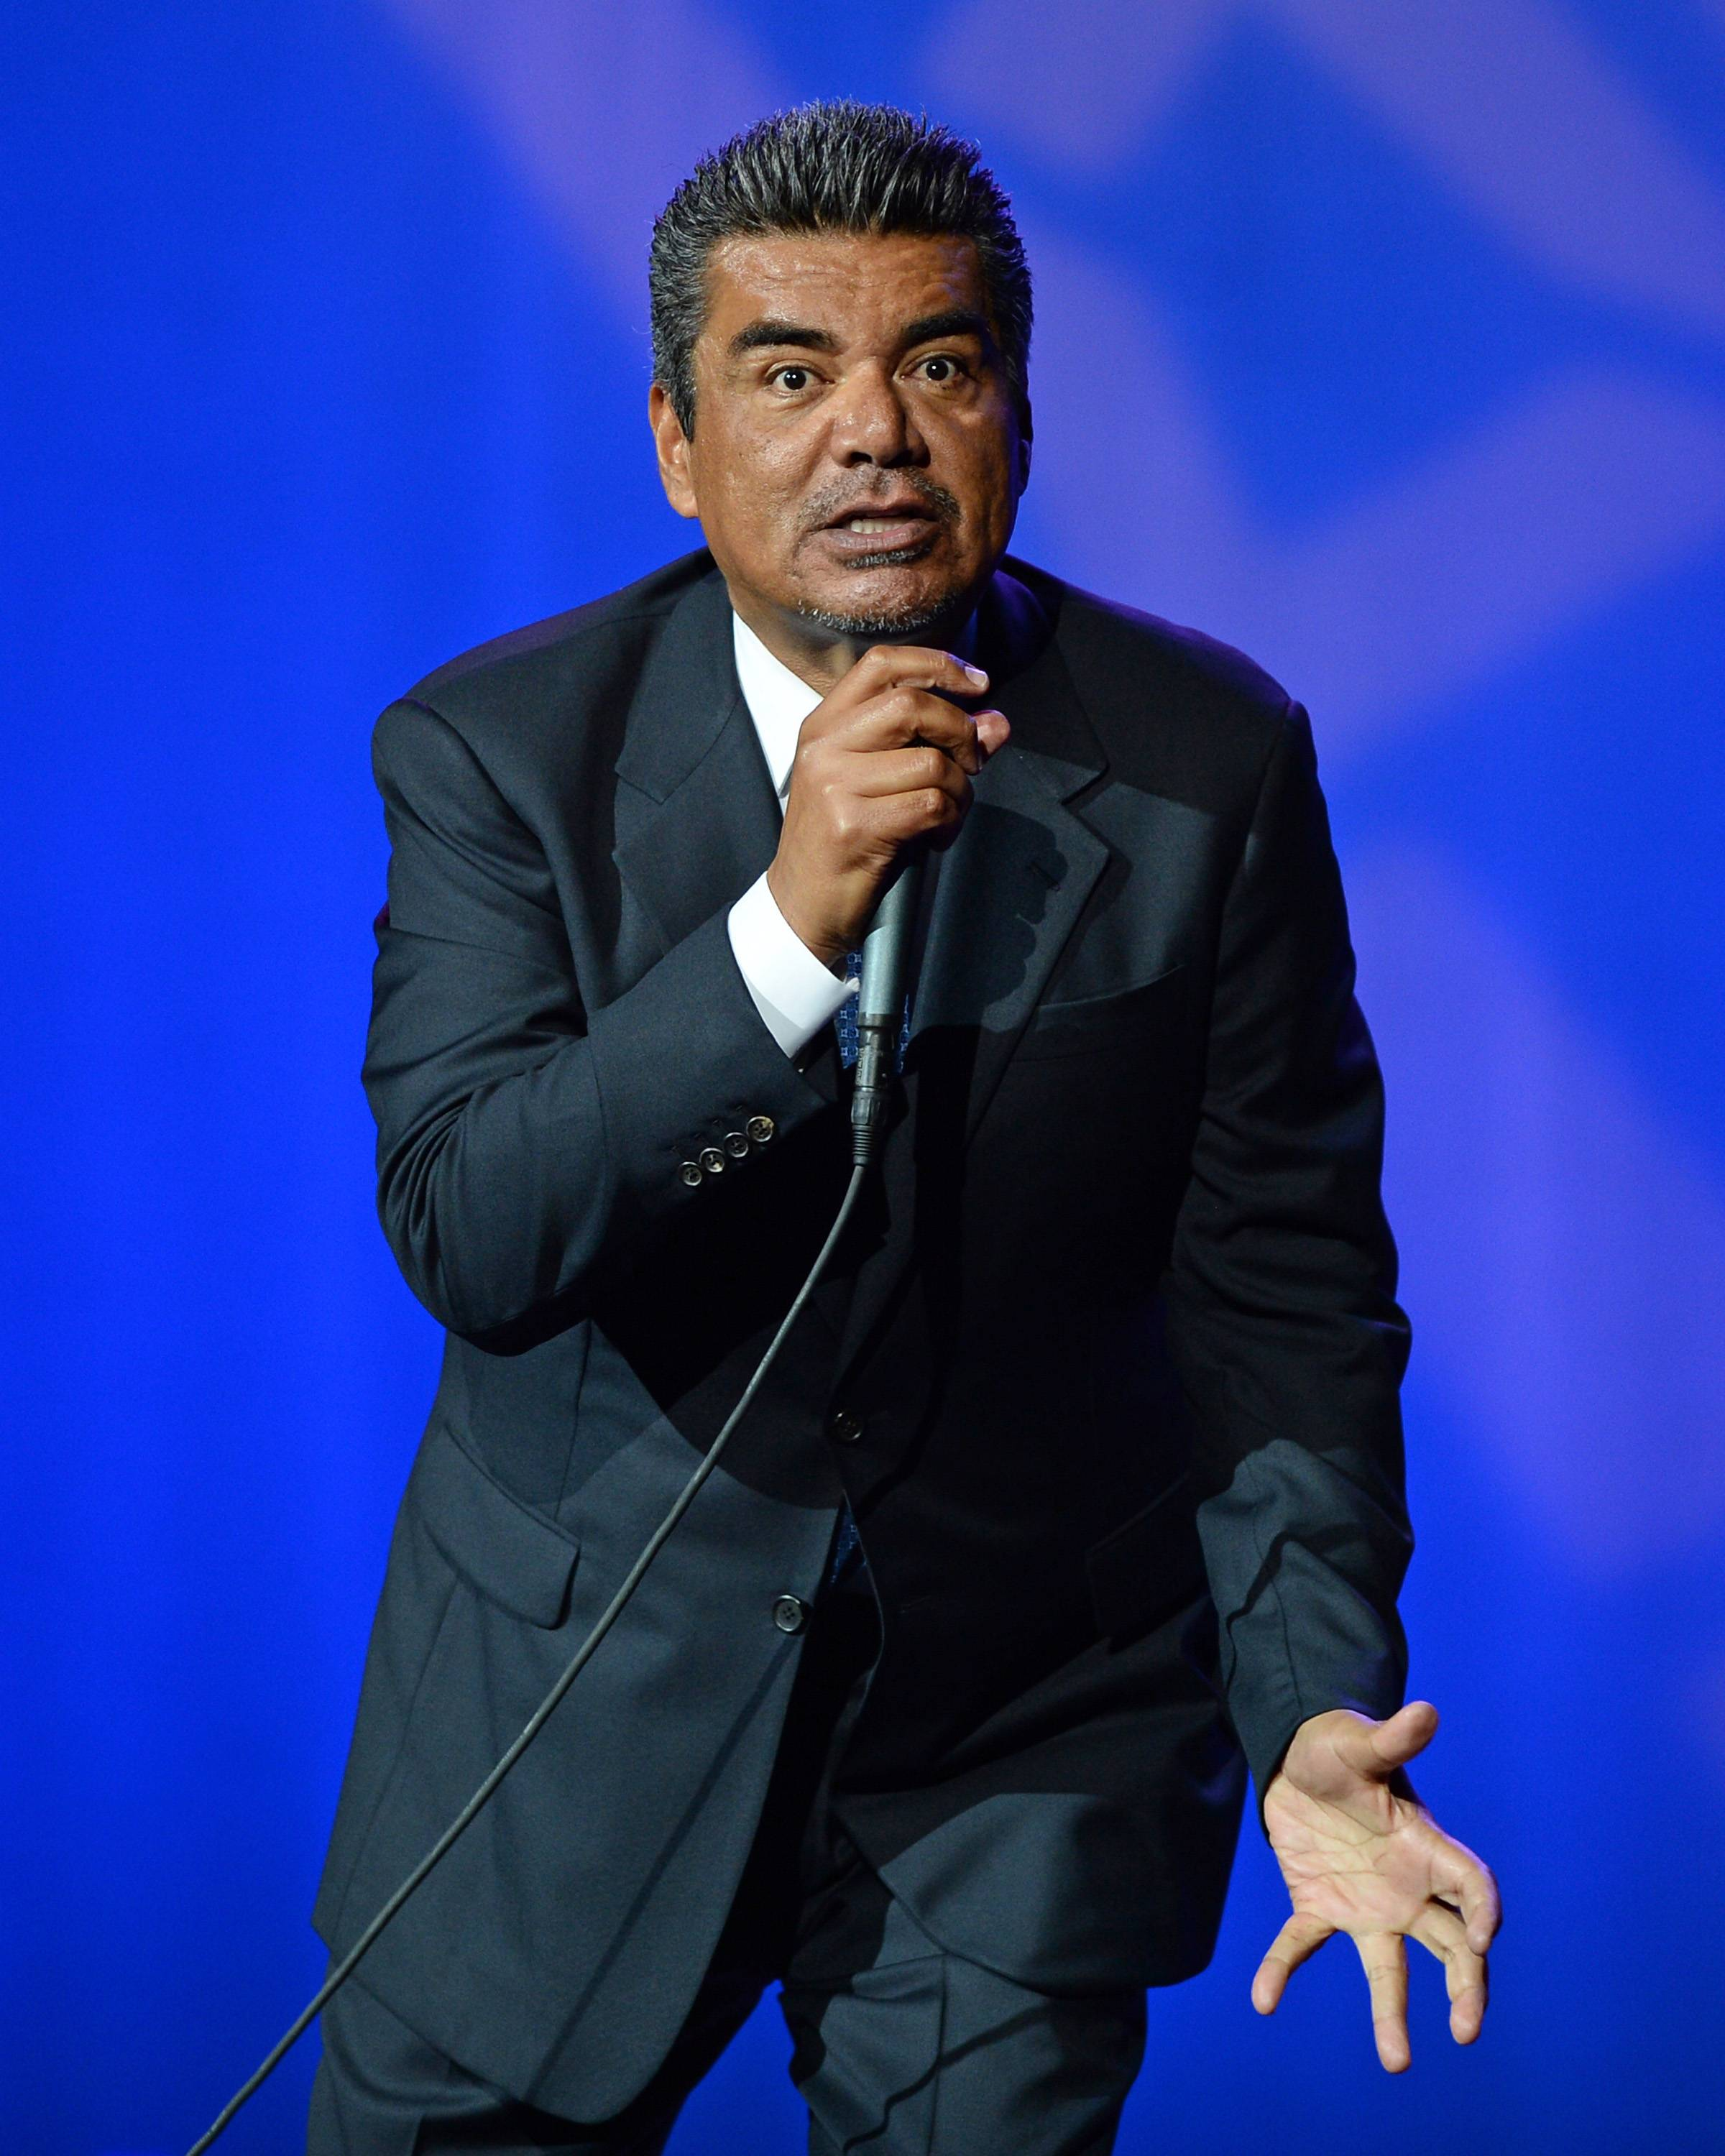 4. He Still Goes on Tour - He's far from retired. Yes, Lopez still tours the country doing shows at just about every venue that a comedian could perform at. (Photo: Larry Marano/Getty Images)